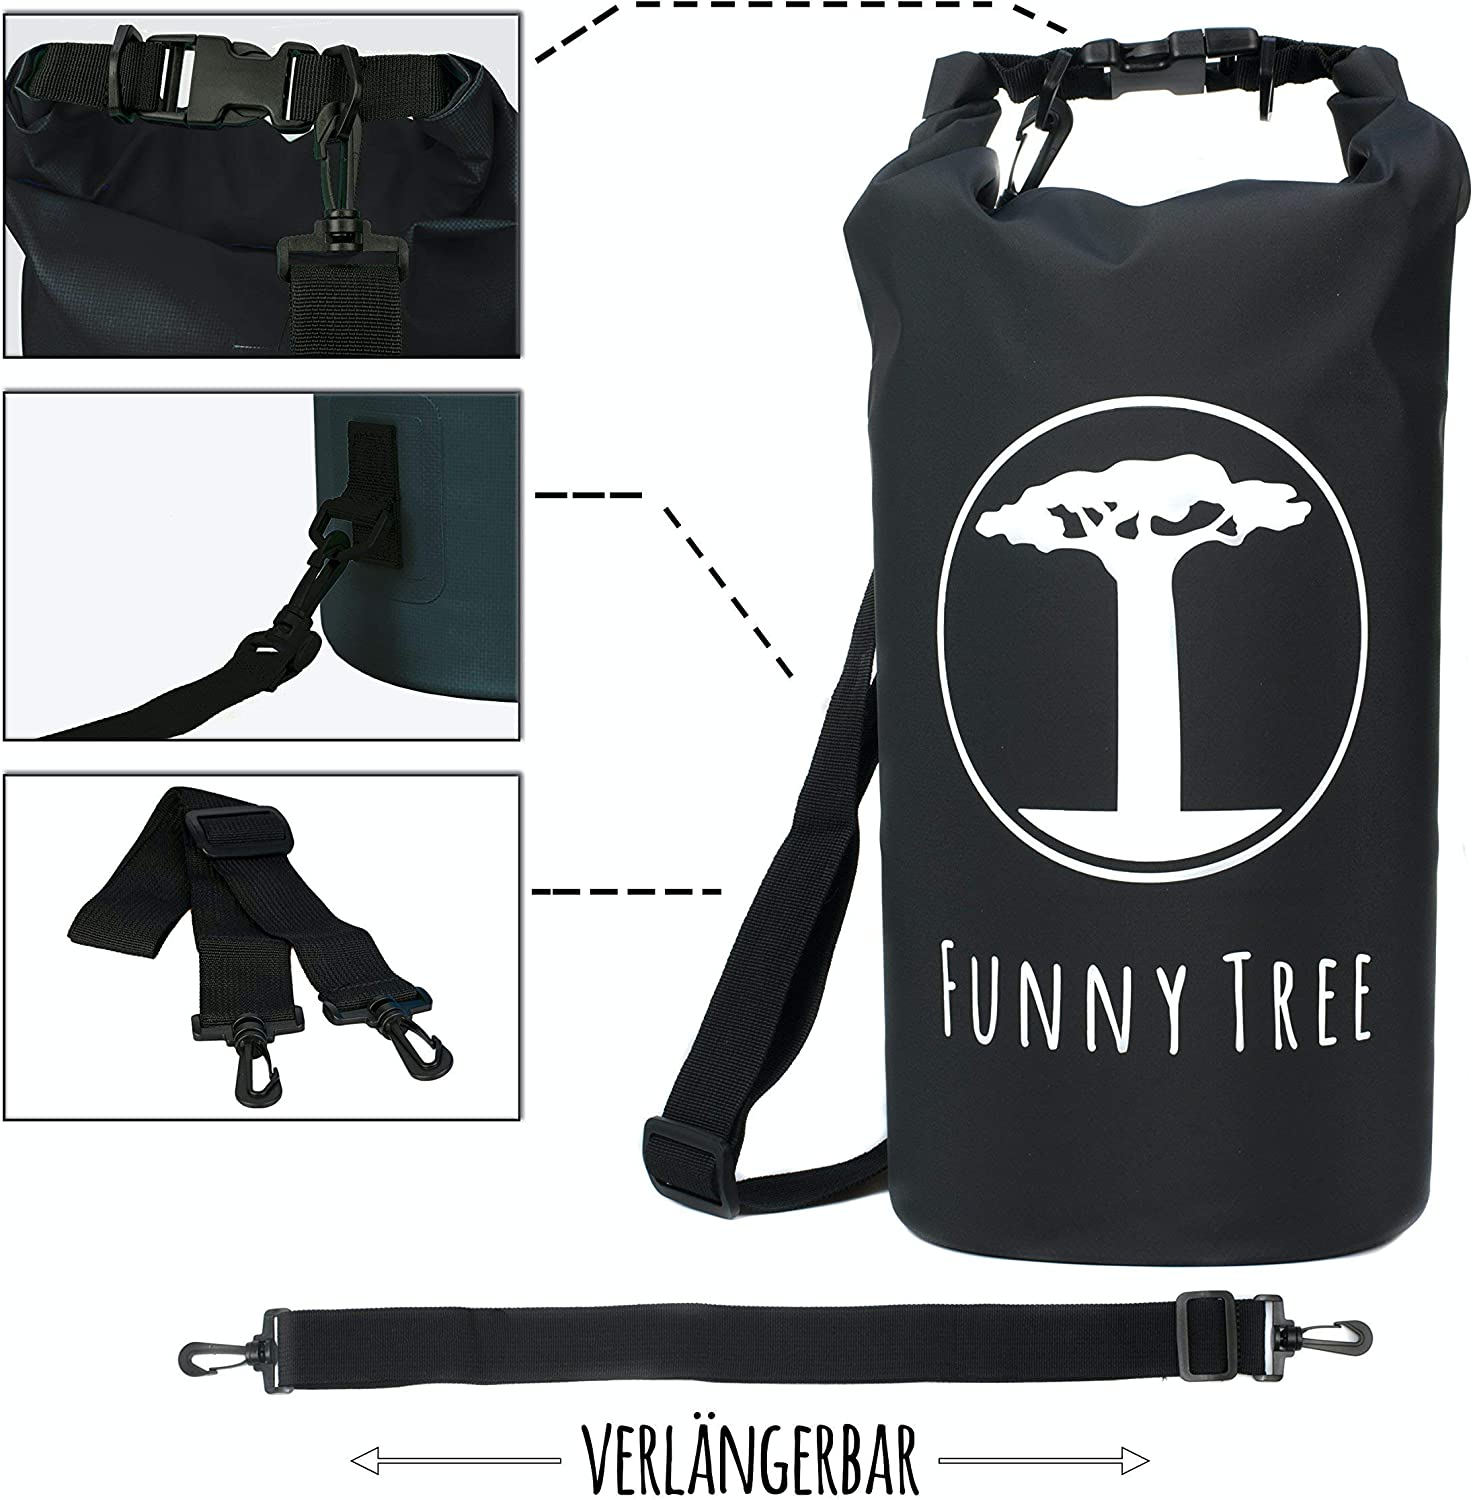 Funny Tree Dry Bag Waterproof Ipx6 Optimised Rucksack 30 L 20 L 10 L Camping Accessories Dinghy Kayak Rafting Canoe Swimming Beach Boating Camping Diving Sport Freizeit